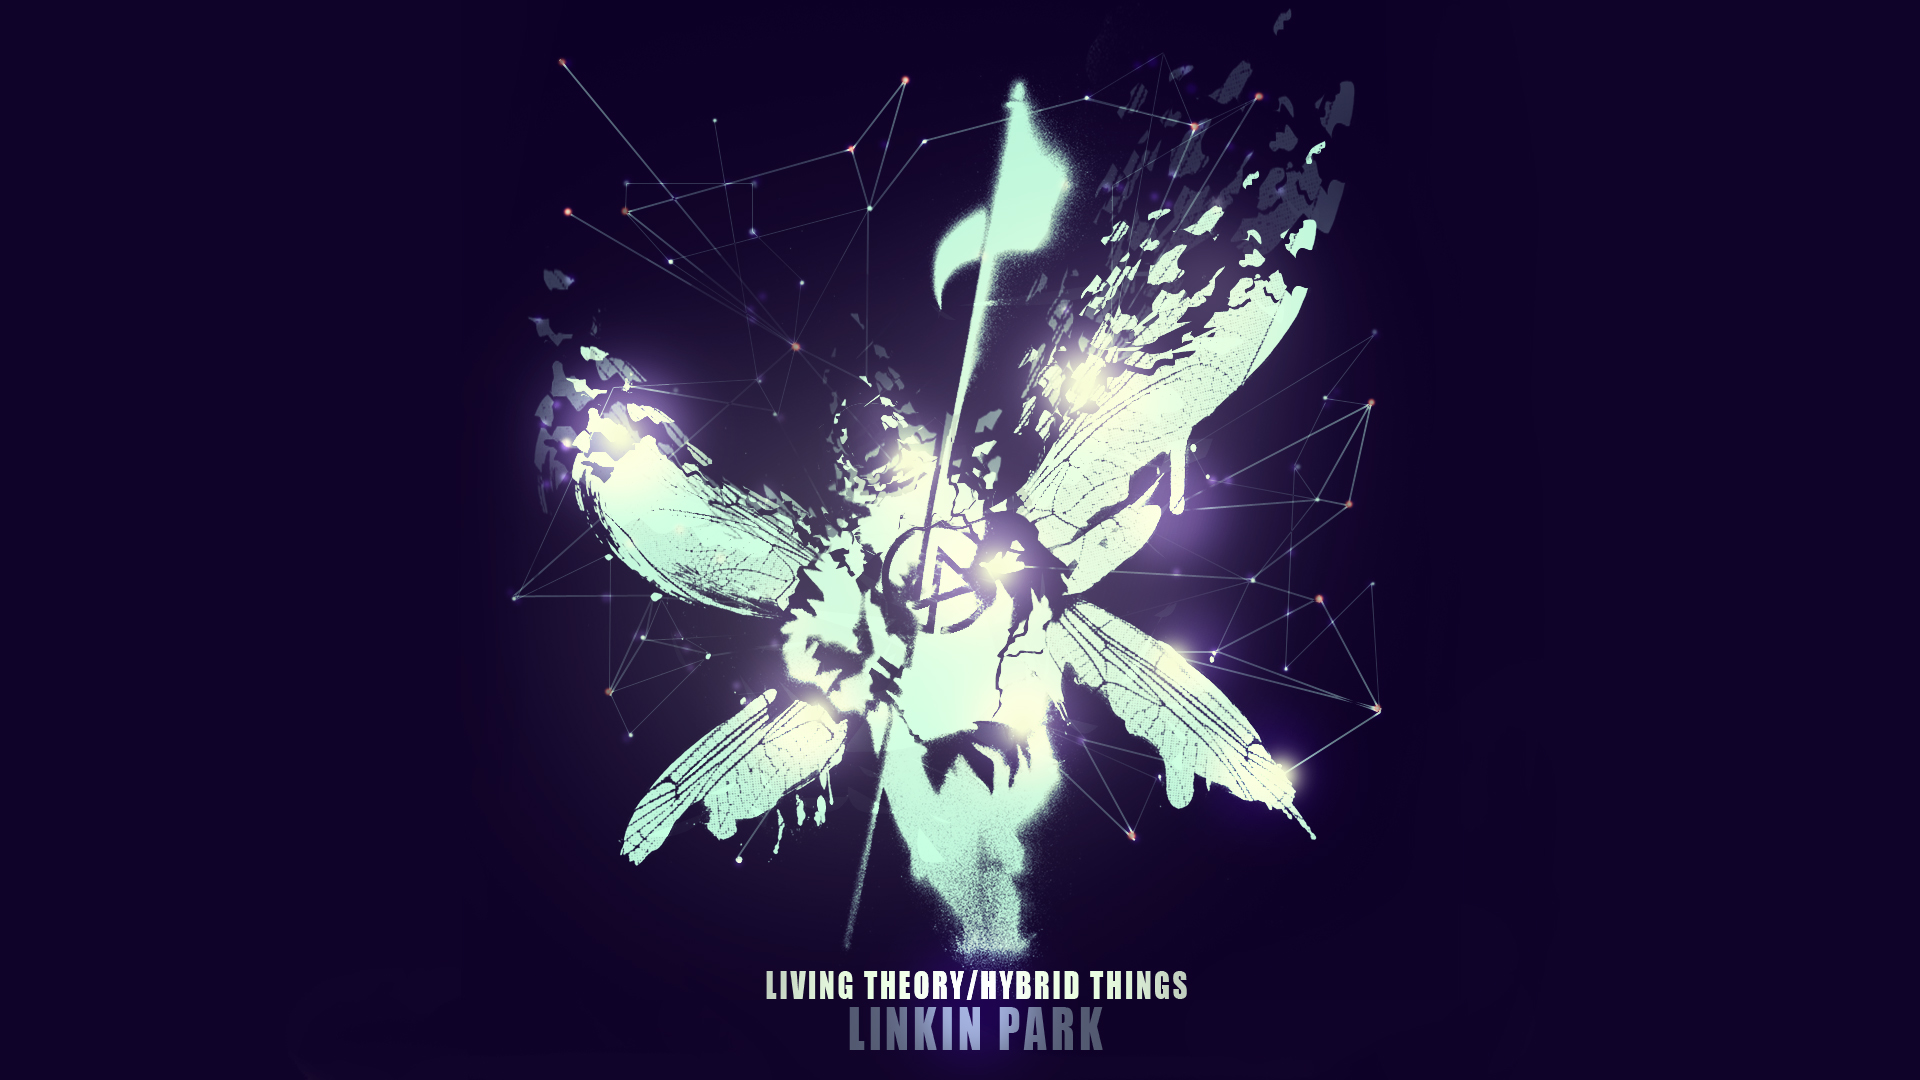 Linkin Park Living Theory Hybrid Things By Tino Arts On